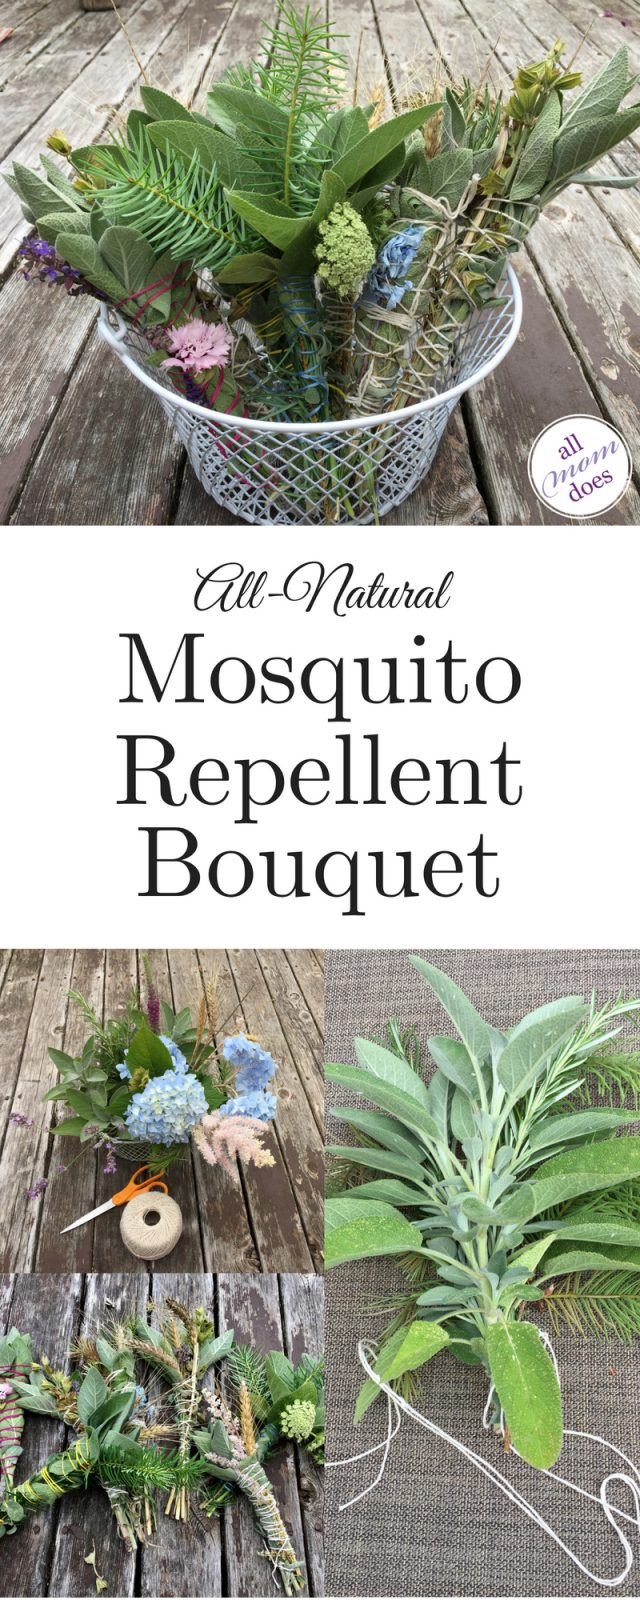 mosquito repellent - all natural, chemical free, diy